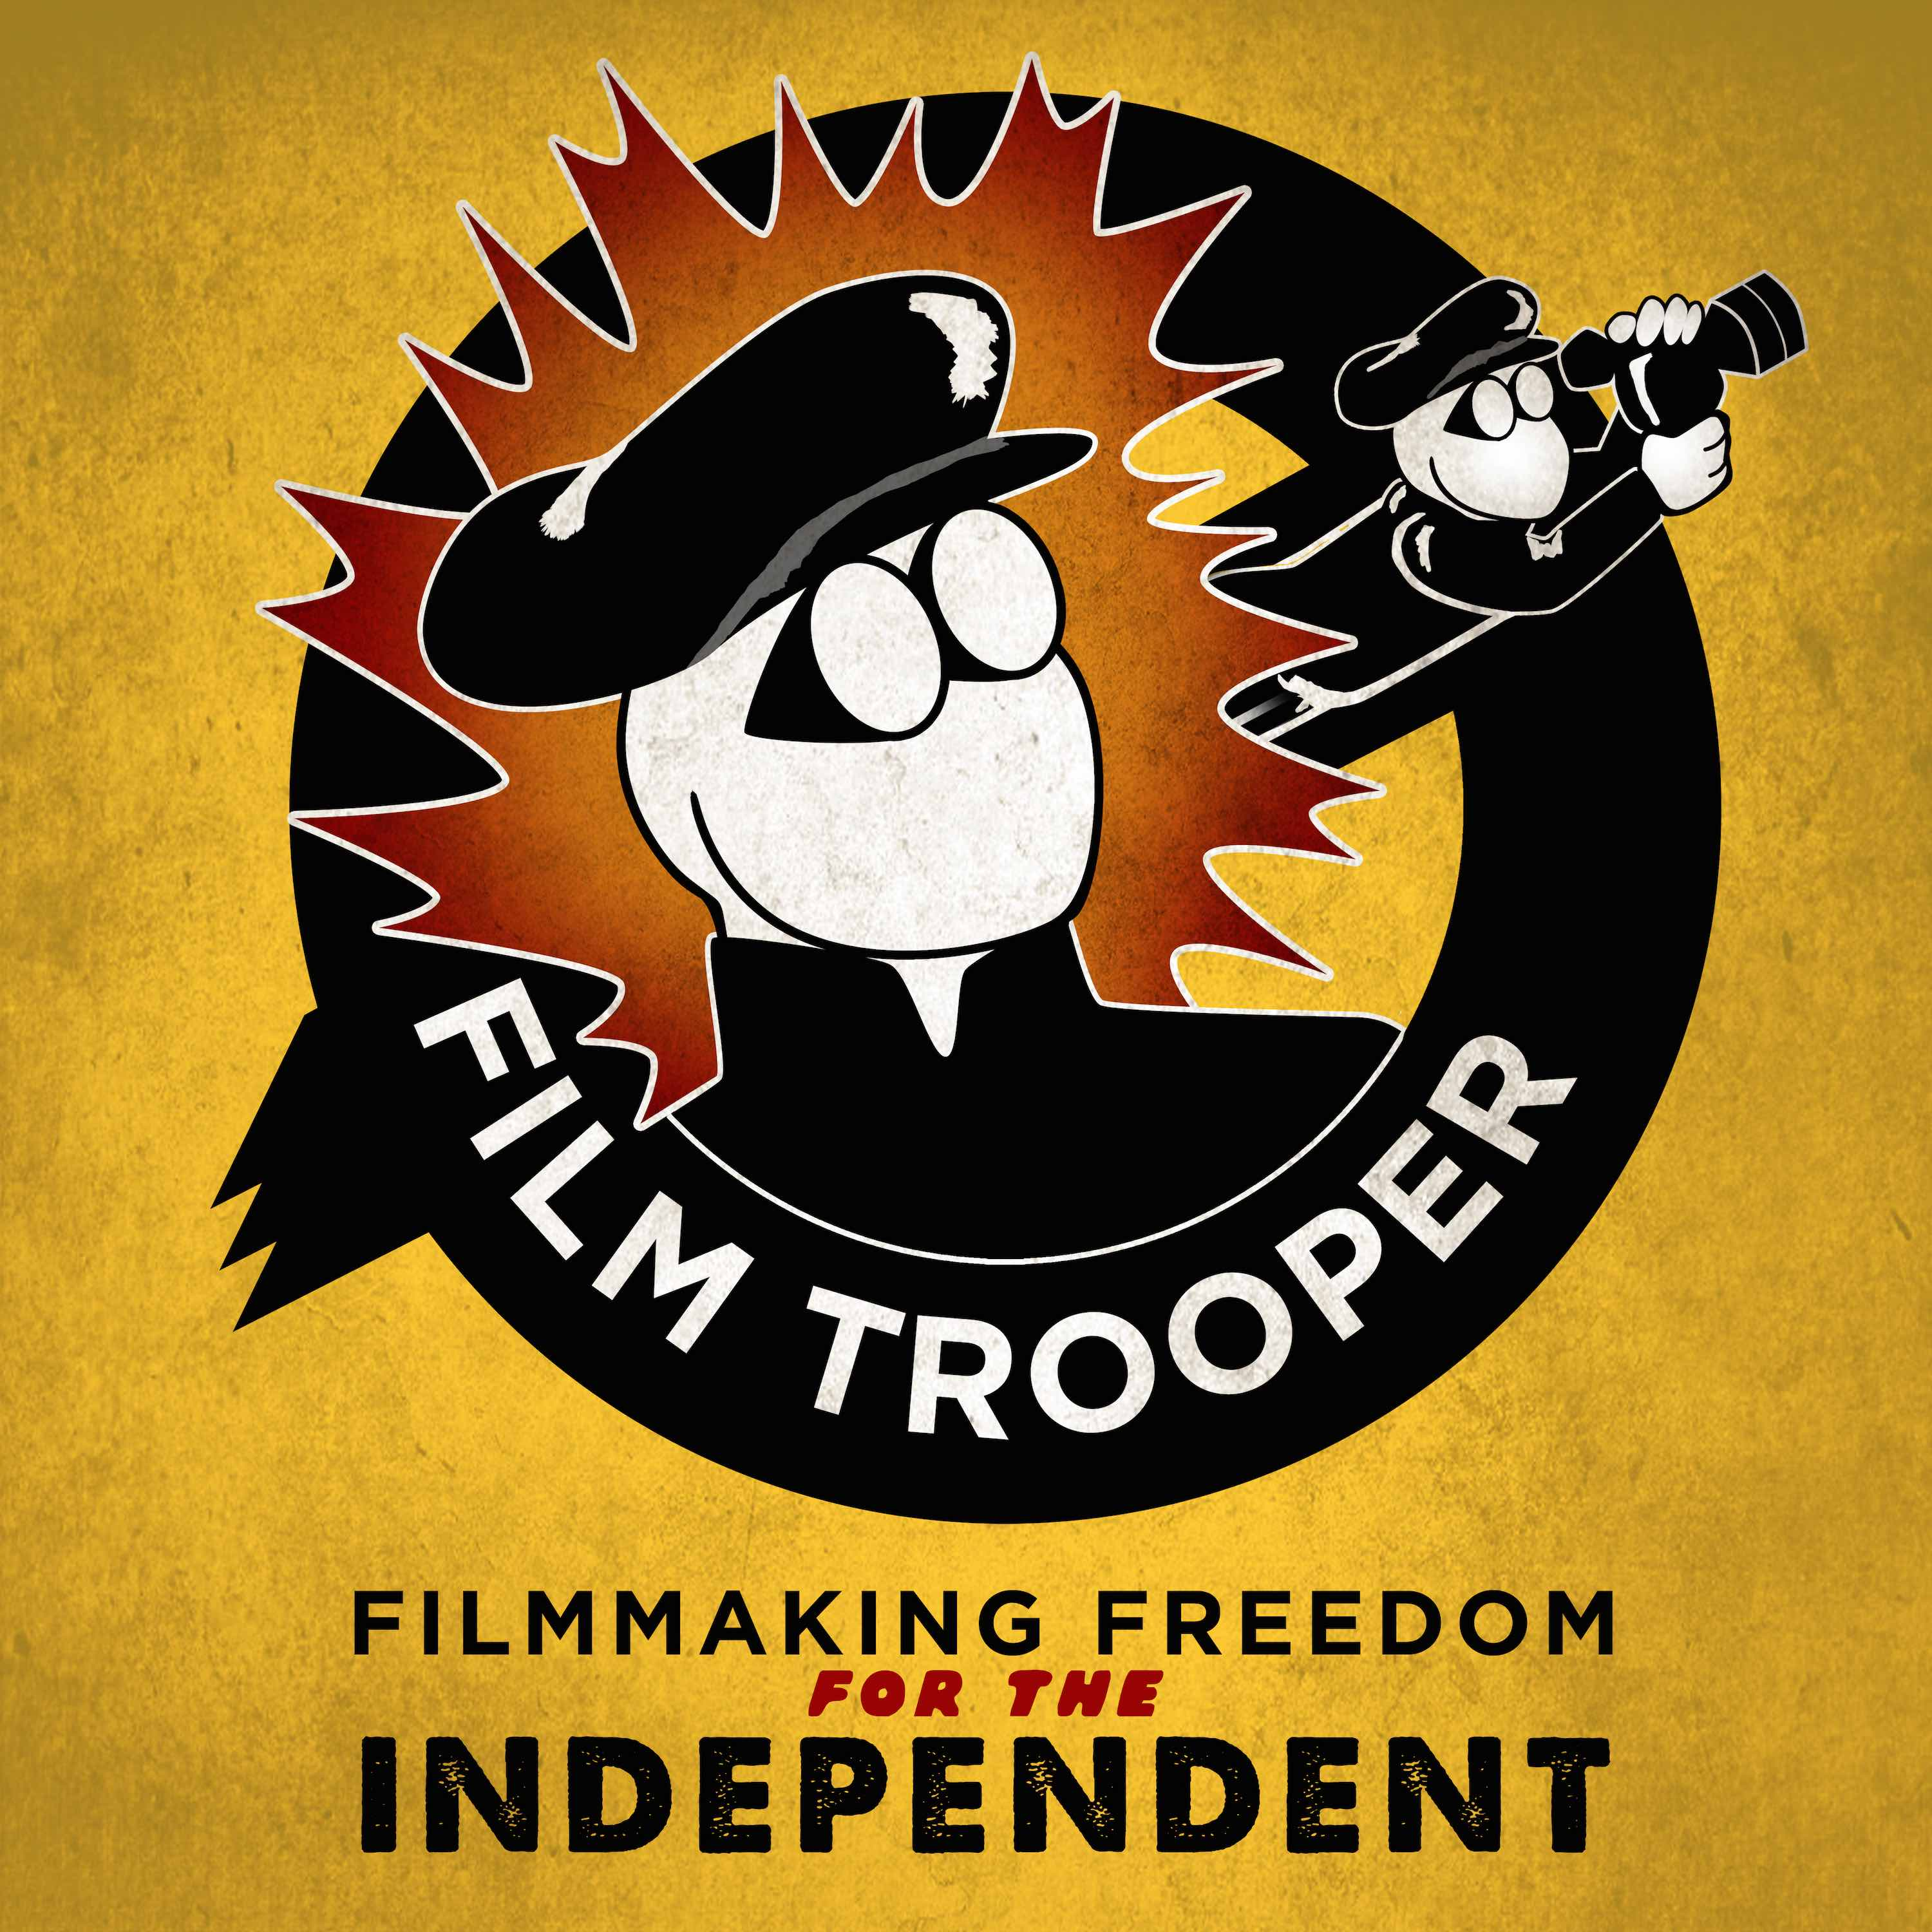 Film Trooper Podcast: Filmmaking Freedom for the Independent | Filmmaking | Film Business | Film Marketing | Film Distribution | Indie Film | Independent Film | Movie Making | Best Filmmaking | Film School | Screenwriting | Film Sales | Selling Your Film